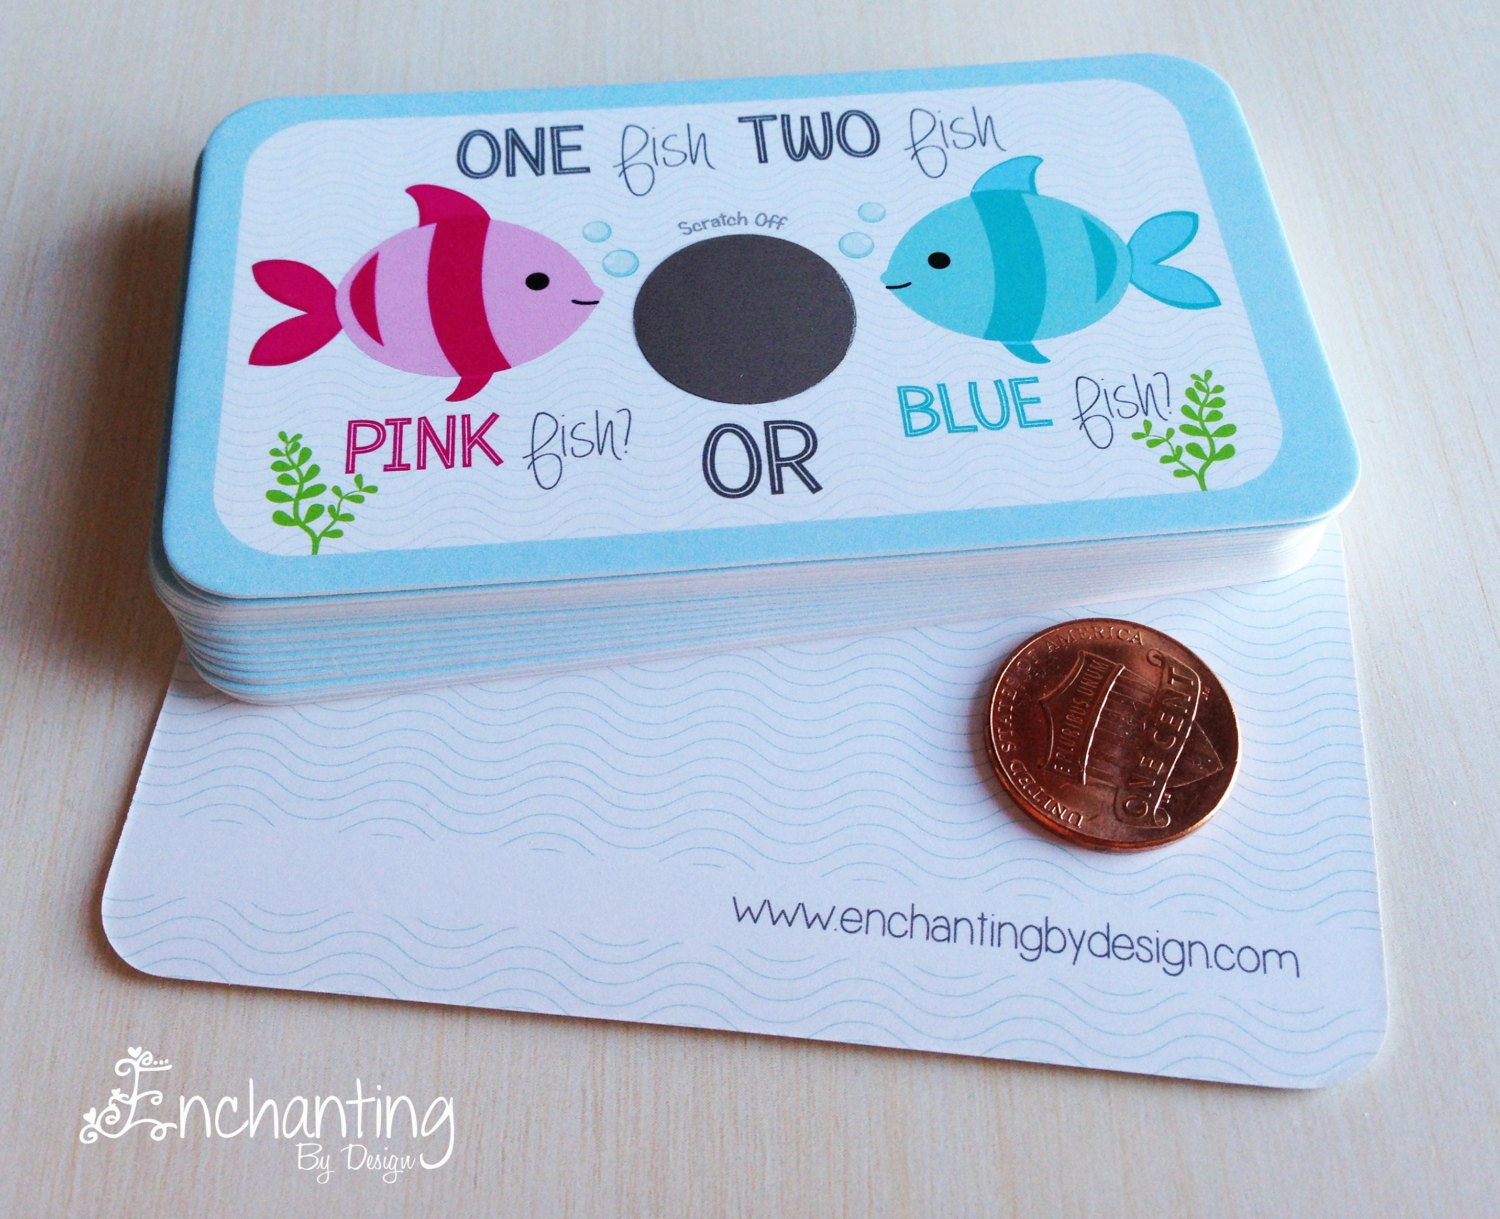 One fish two fish pink fish or blue fish by enchantingbydesign for Fishing gender reveal